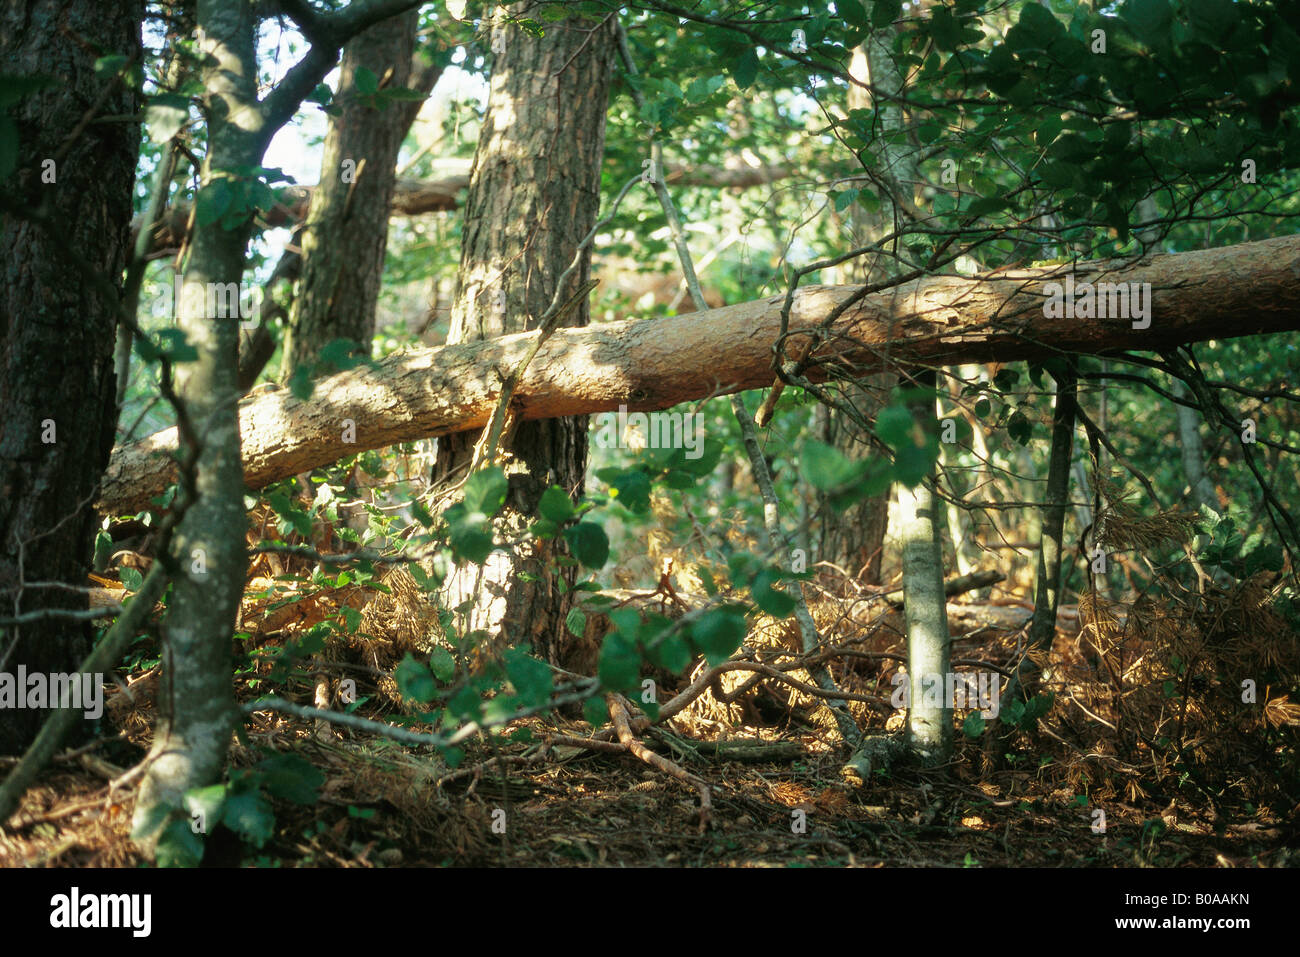 Fallen tree trunk in forest - Stock Image